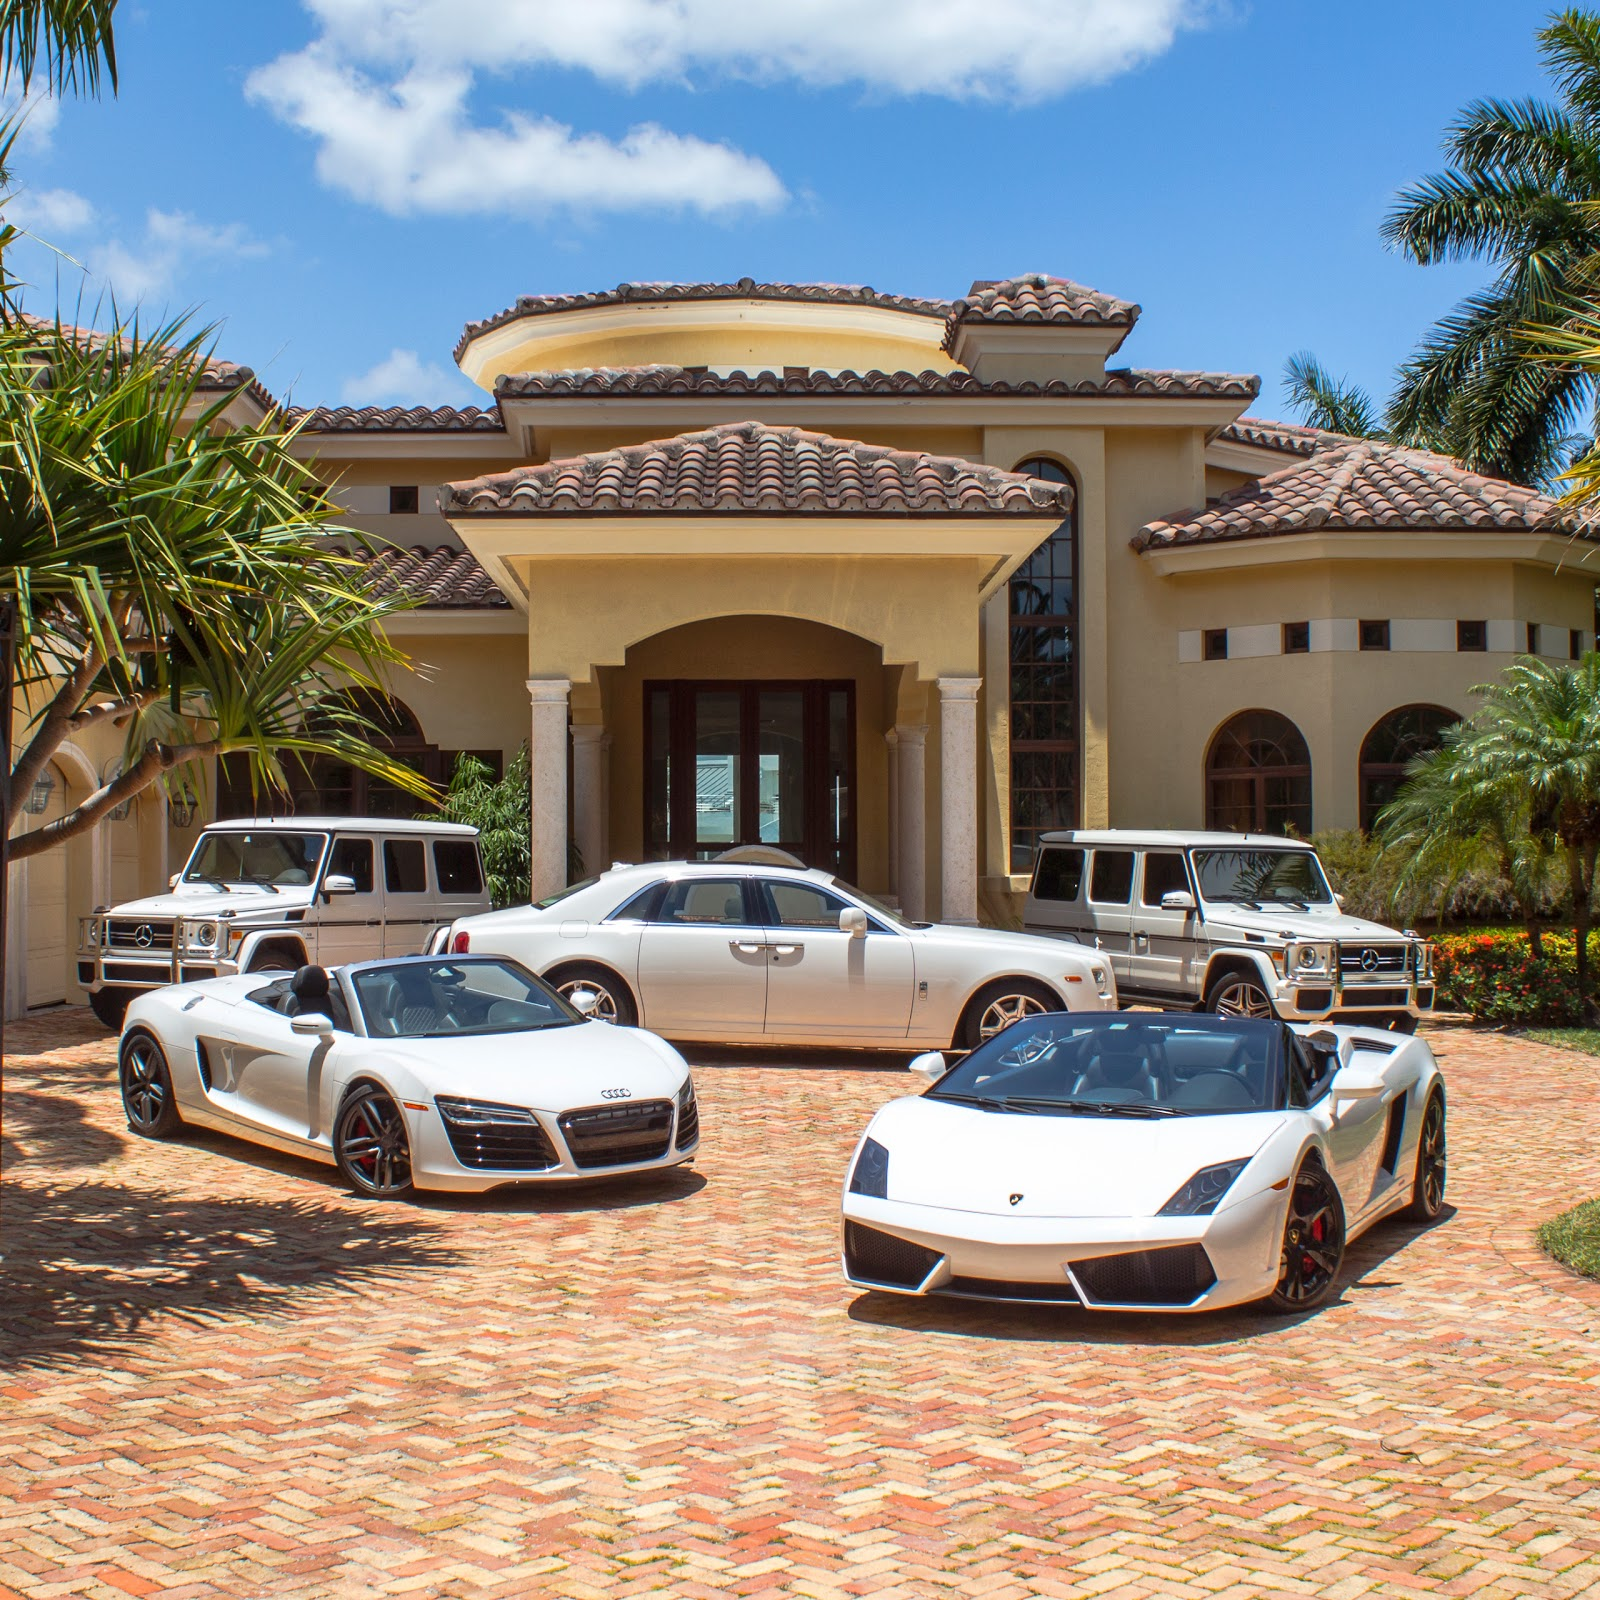 Exotic Car Rental In Miami Mph Club 174 Golden Beach Waterfront Mansion For Sale